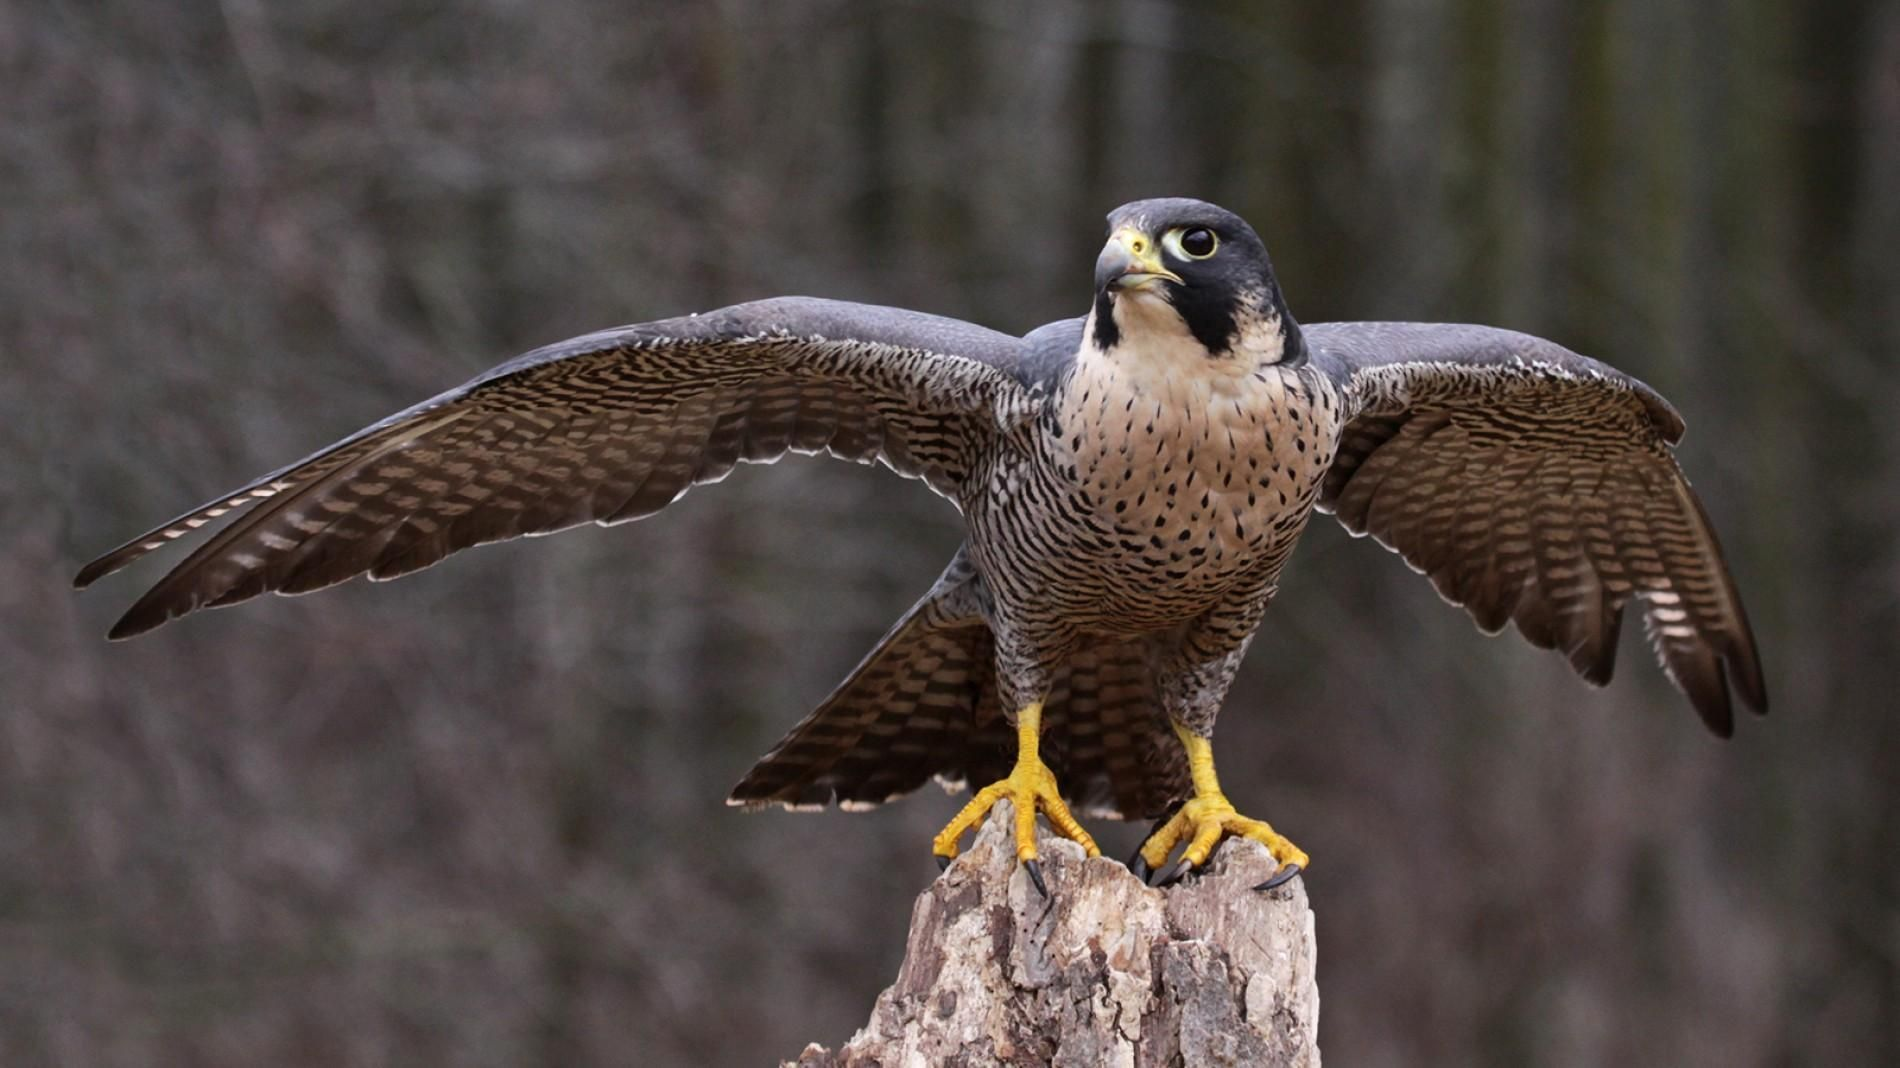 Goods From Central Asia Falcons Peregrine Falcon Animals Peregrine